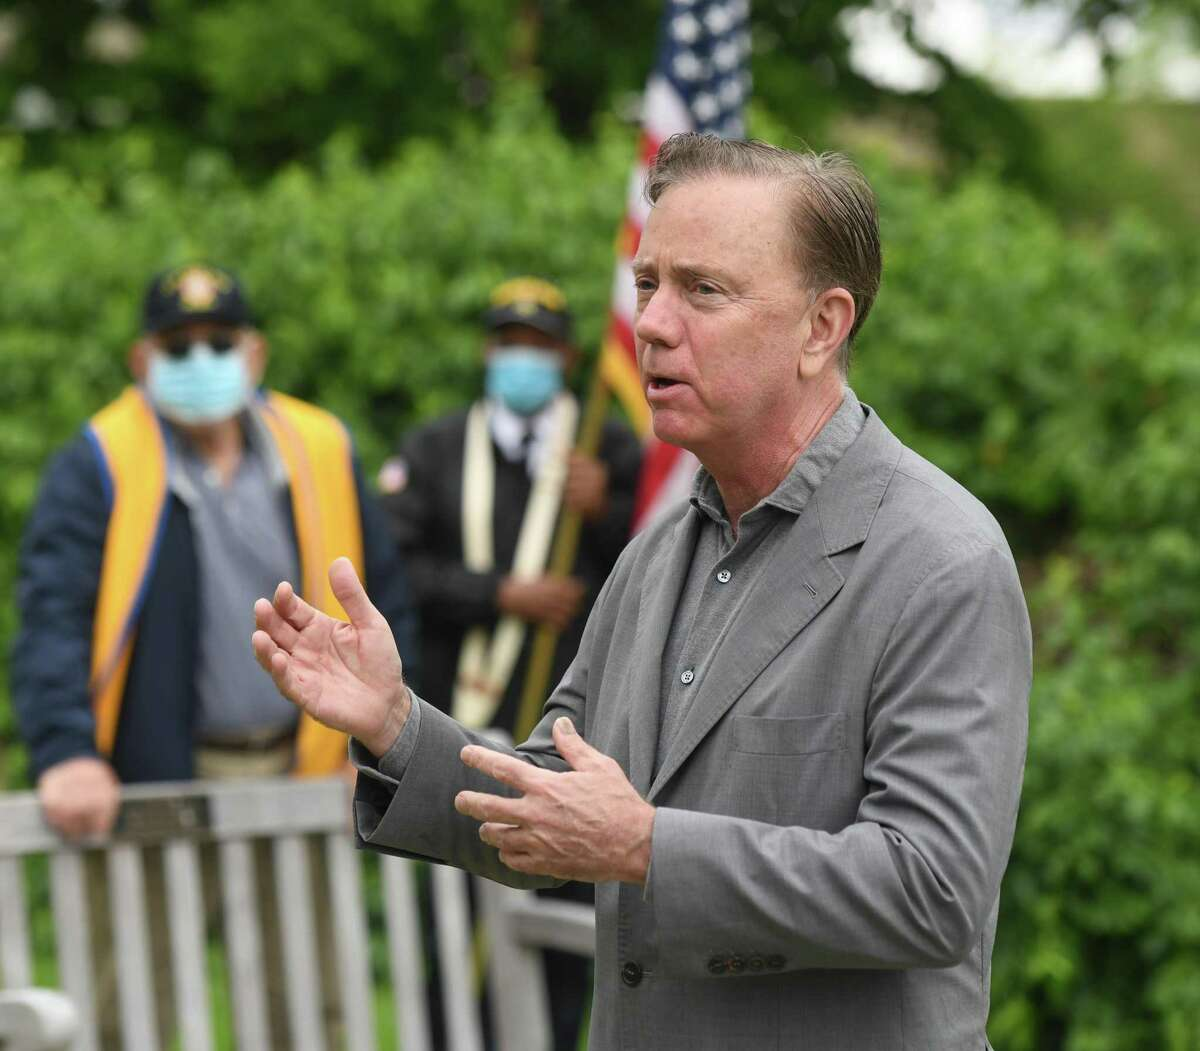 Connecticut Gov. Ned Lamont speaks during the Memorial Day cermony at the Cos Cob war memorial in Greenwich, Conn. Monday, May 25, 2020. Greenwich held Memorial Day ceremonies at the Indian Harbor Yacht Club, WWI and WWII monuments, Vietnam War monument, Eugene Merlot Park, and the Cos Cob war memorial to commemorate and remember the lives lost in battle.